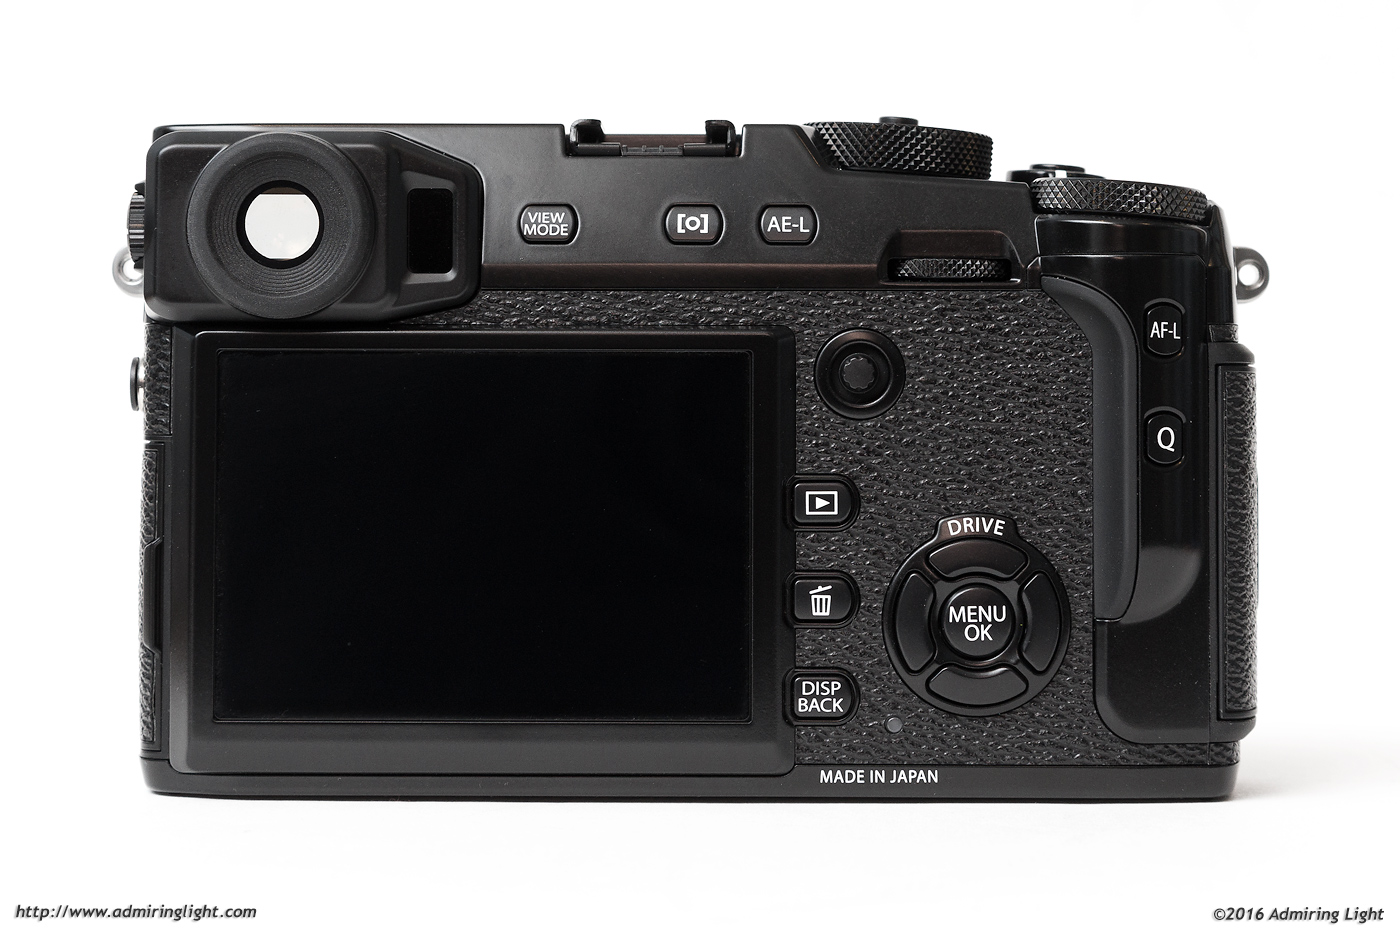 The rear controls of the X-Pro 2, including the new focus stick